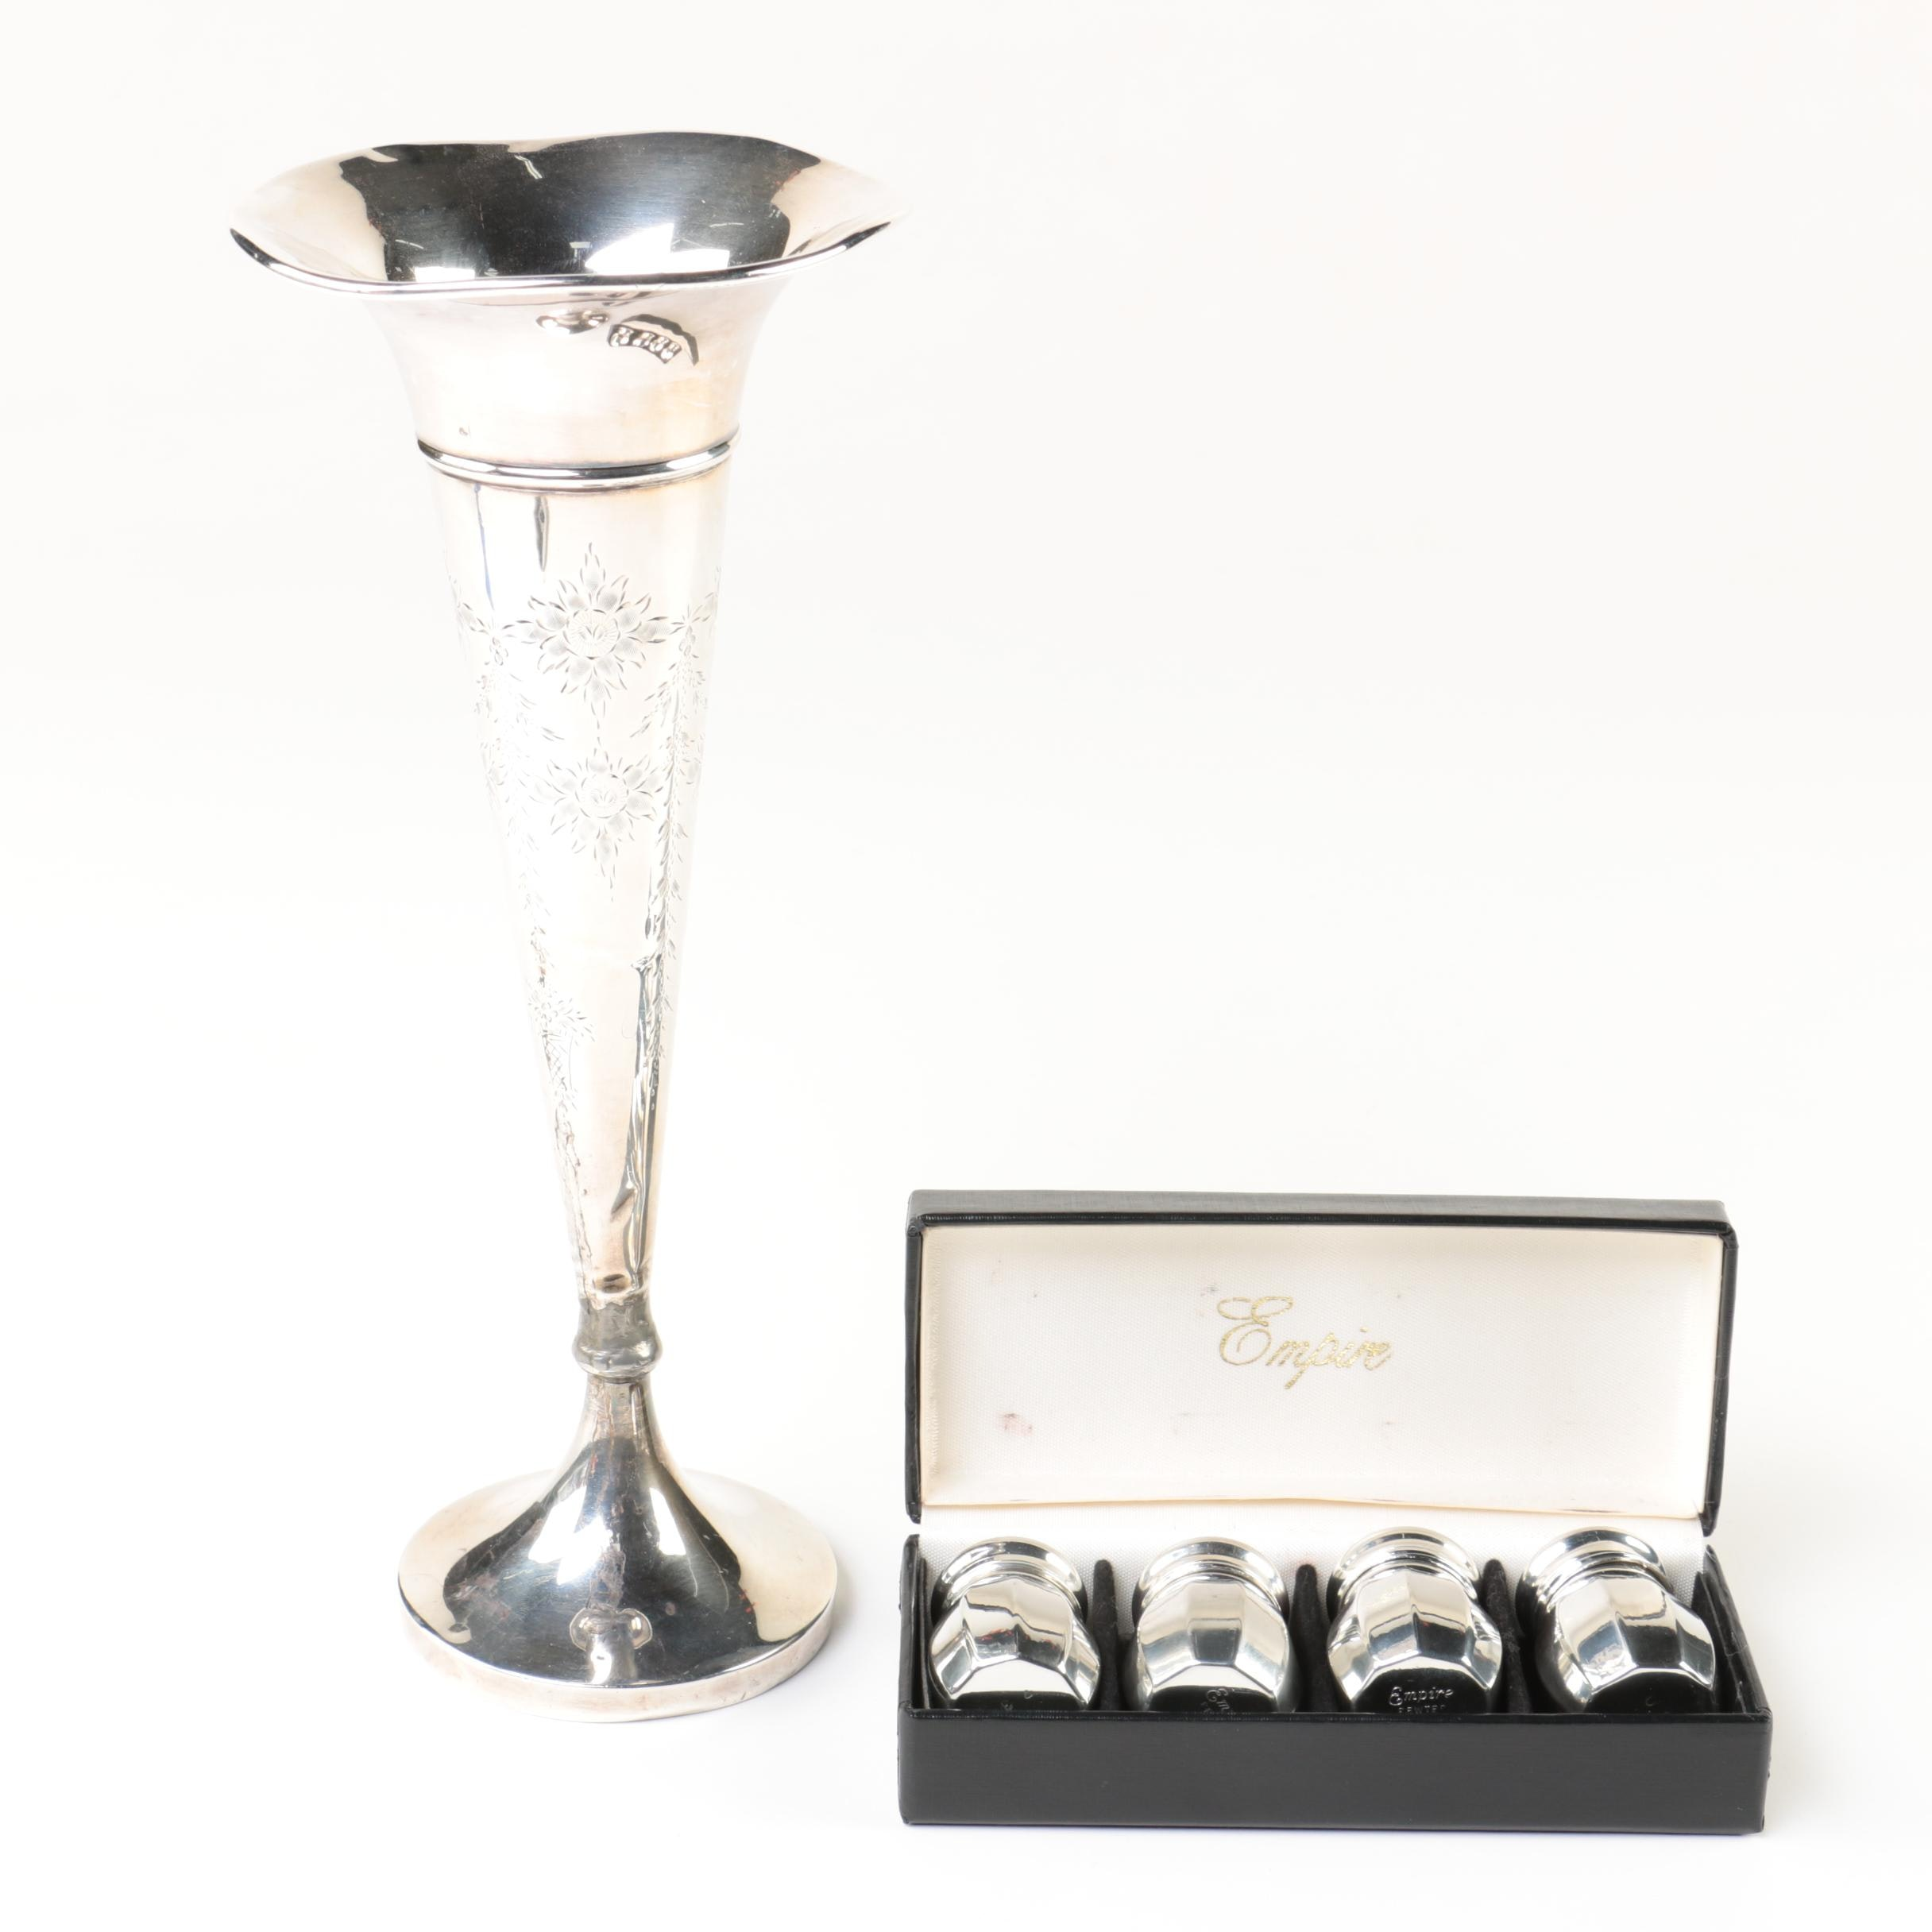 Weighted Sterling Silver Vase with Empire Pewter Shakers